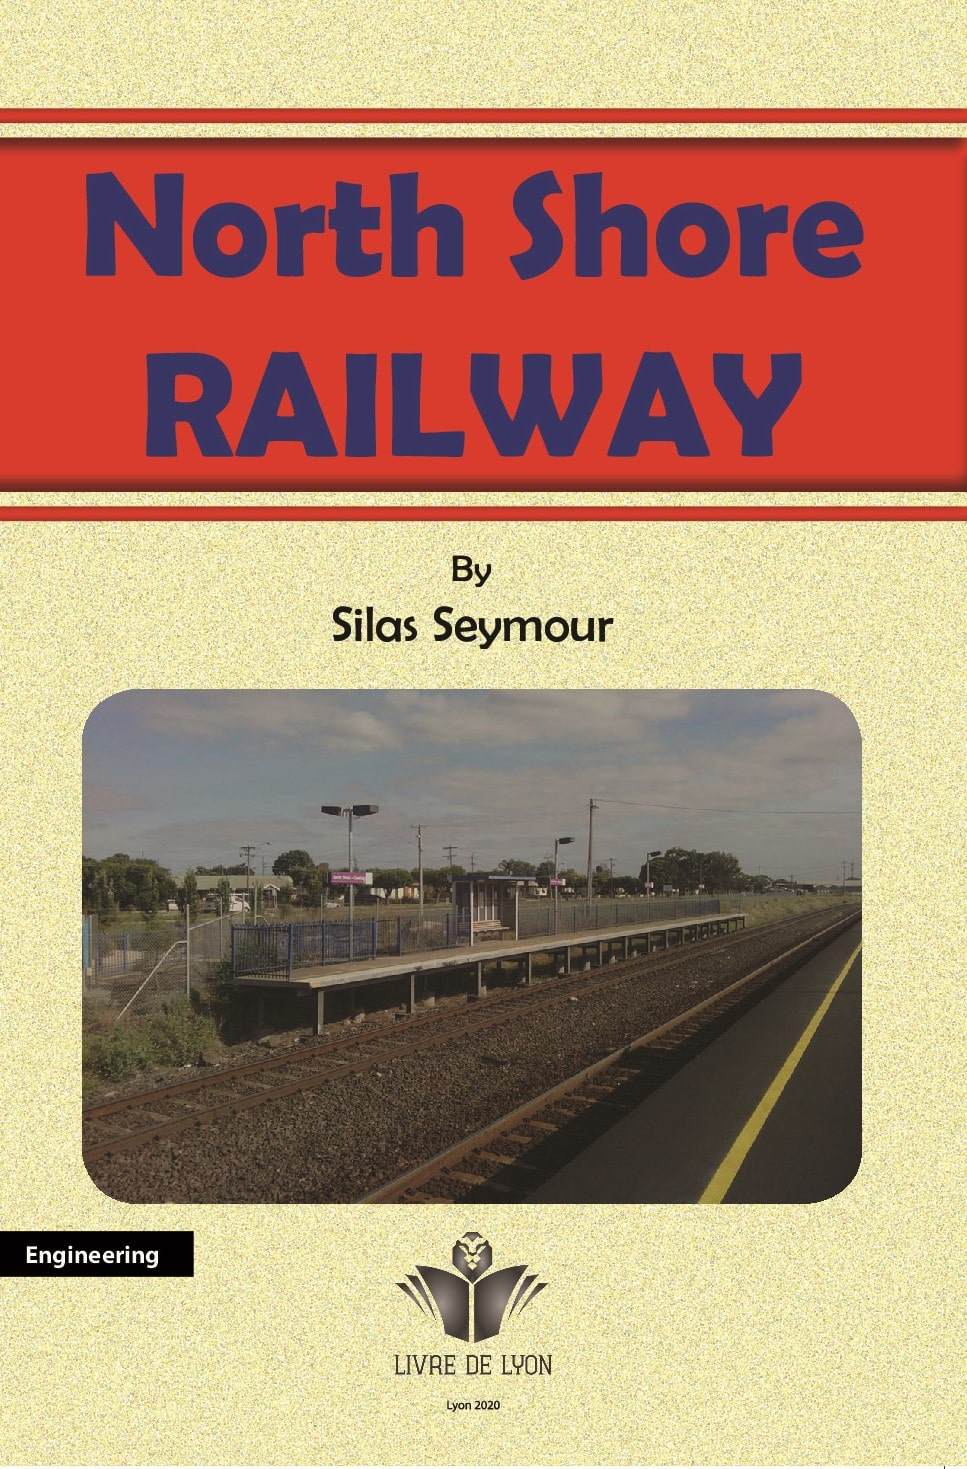 North Shore Railway